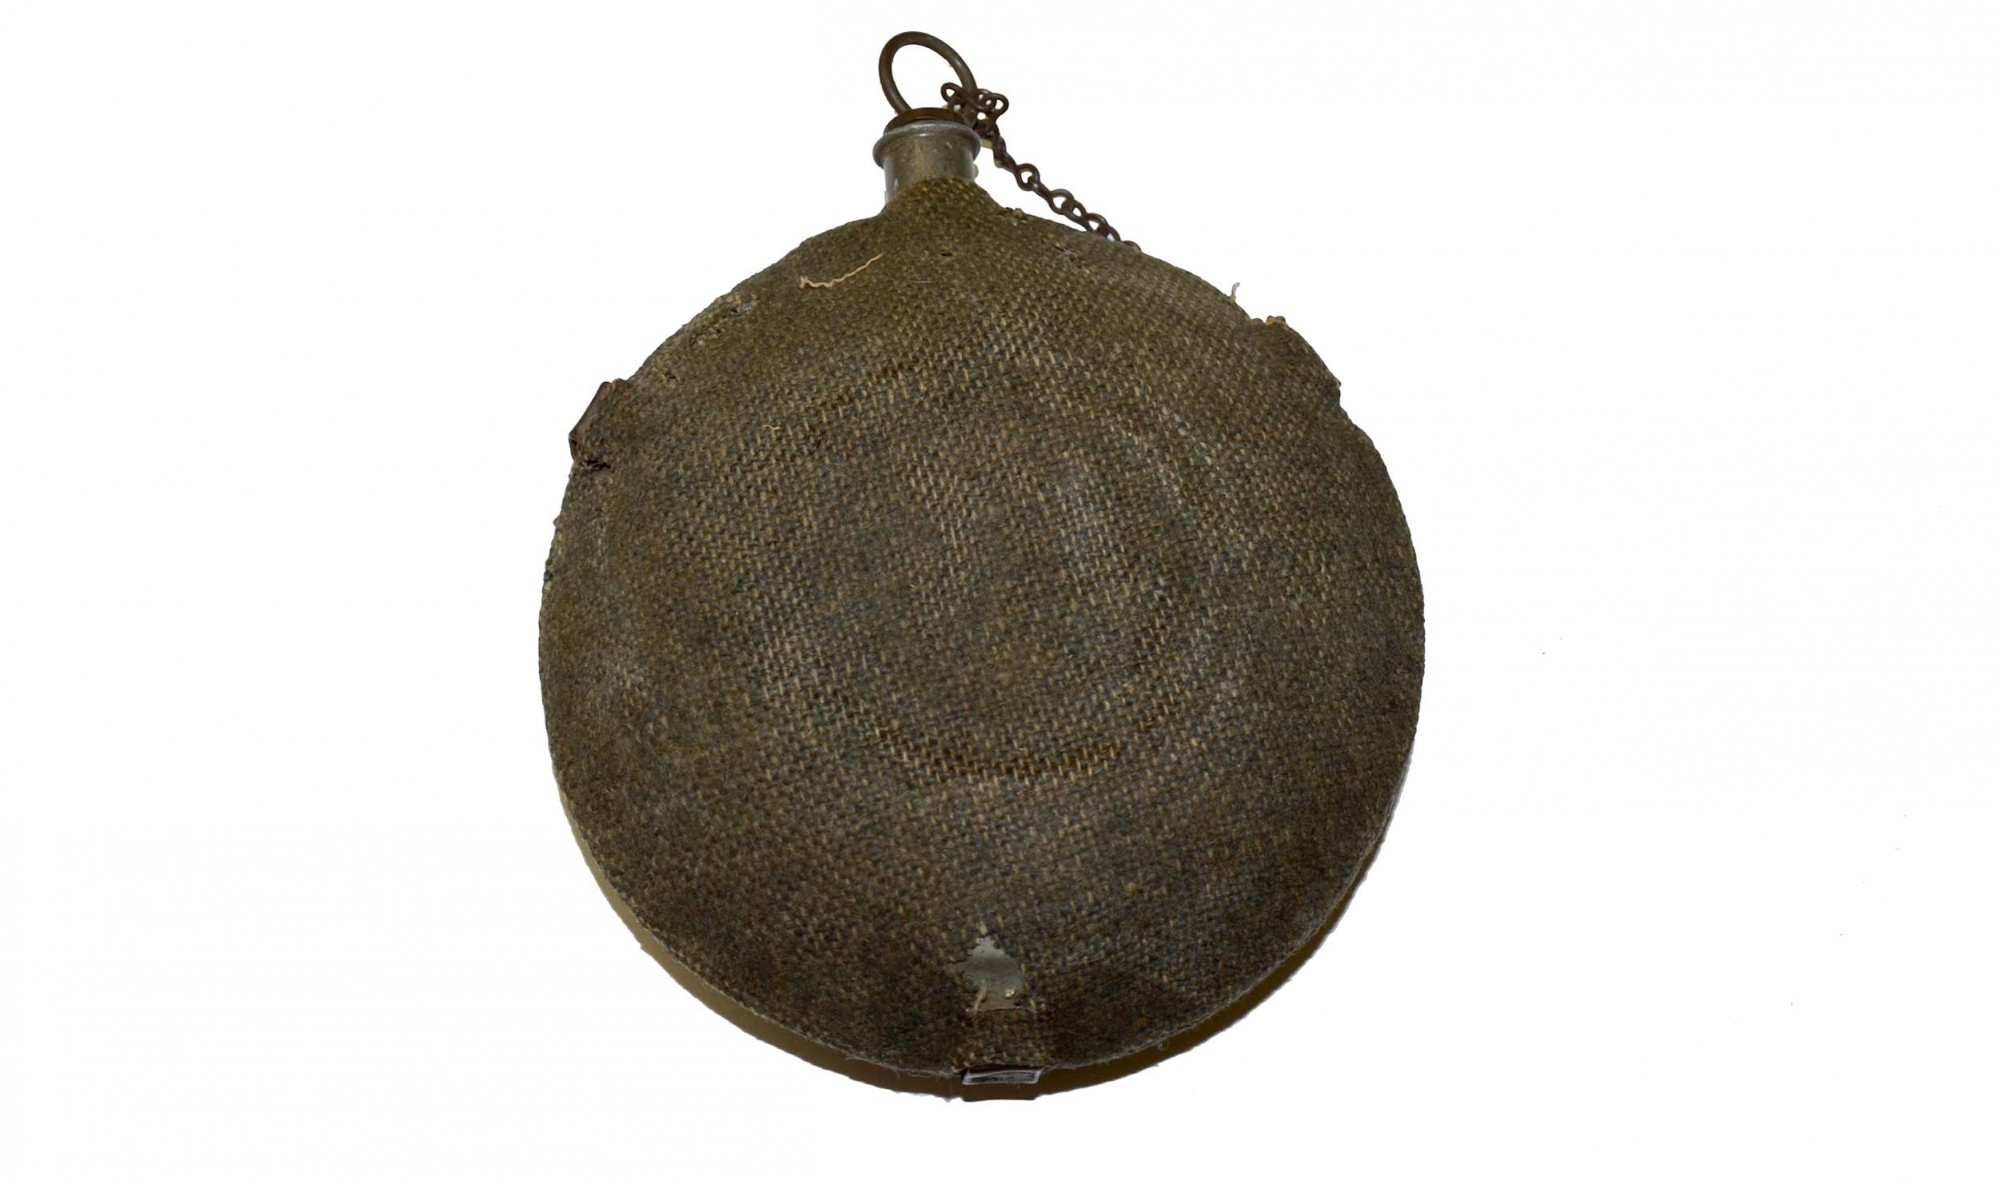 CIVIL WAR NEW YORK DEPOT MAKER MARKED BULLSEYE CANTEEN